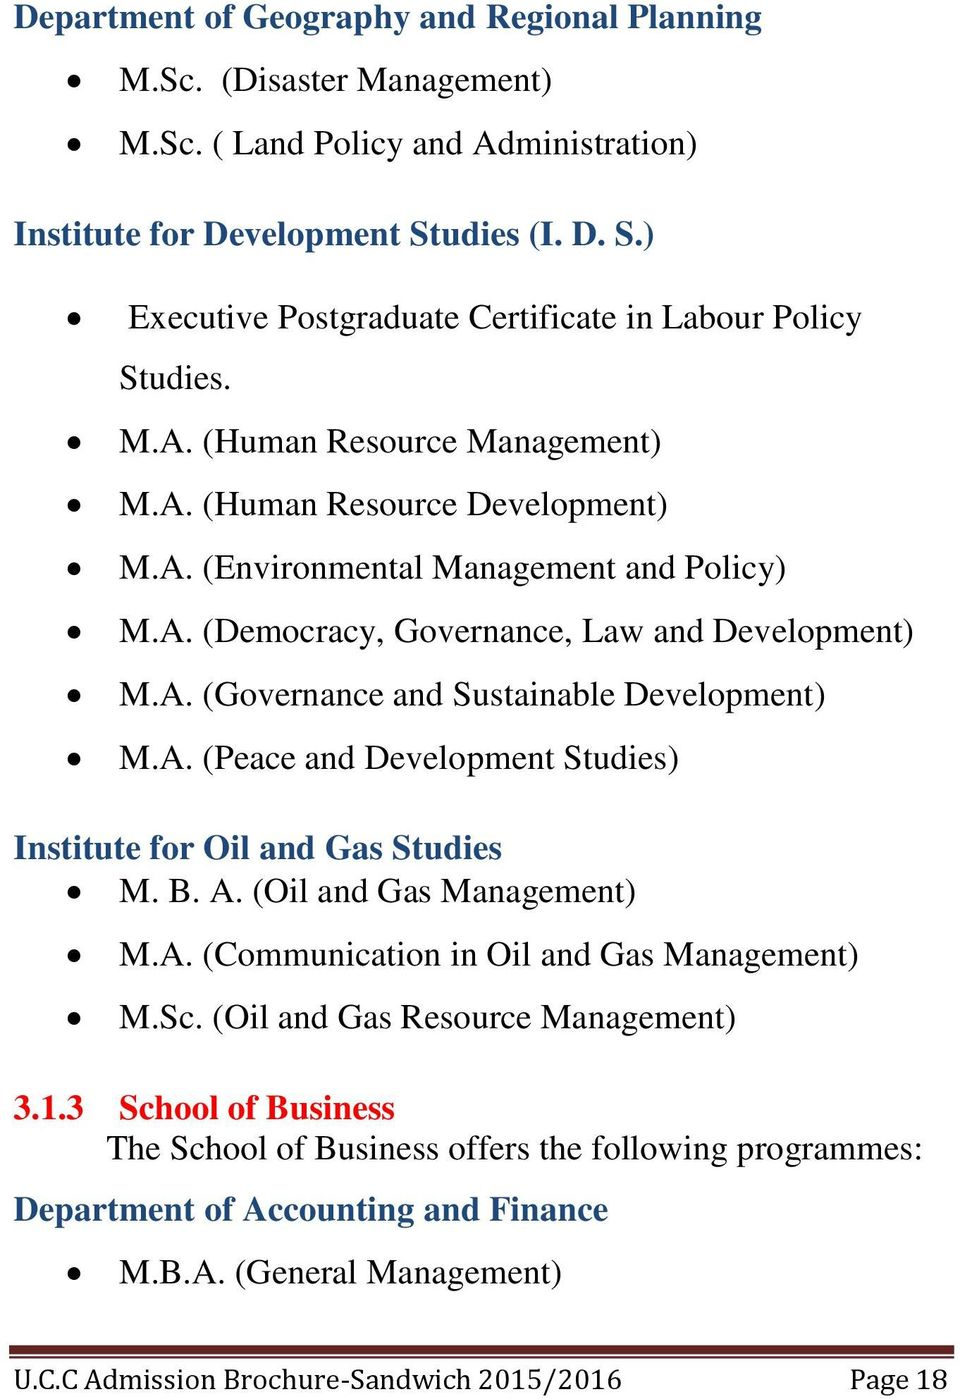 A. (Governance and Sustainable Development) M.A. (Peace and Development Studies) Institute for Oil and Gas Studies M. B. A. (Oil and Gas Management) M.A. (Communication in Oil and Gas Management) M.